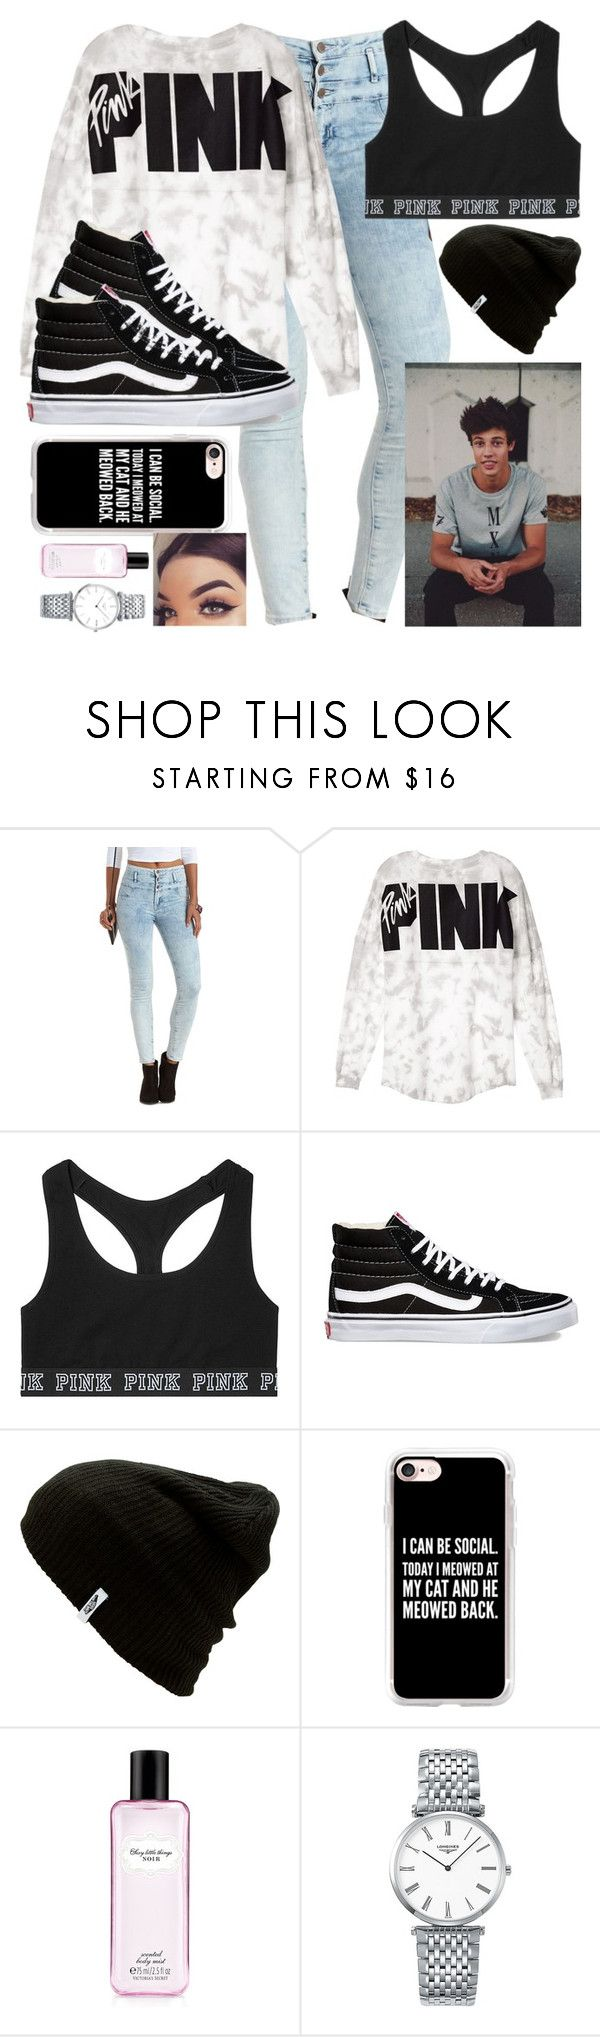 """""""Hanging with Cameron Dallas"""" by malrocks2003 ❤ liked on Polyvore featuring Refuge, Victoria's Secret, Vans, Casetify and Longines"""